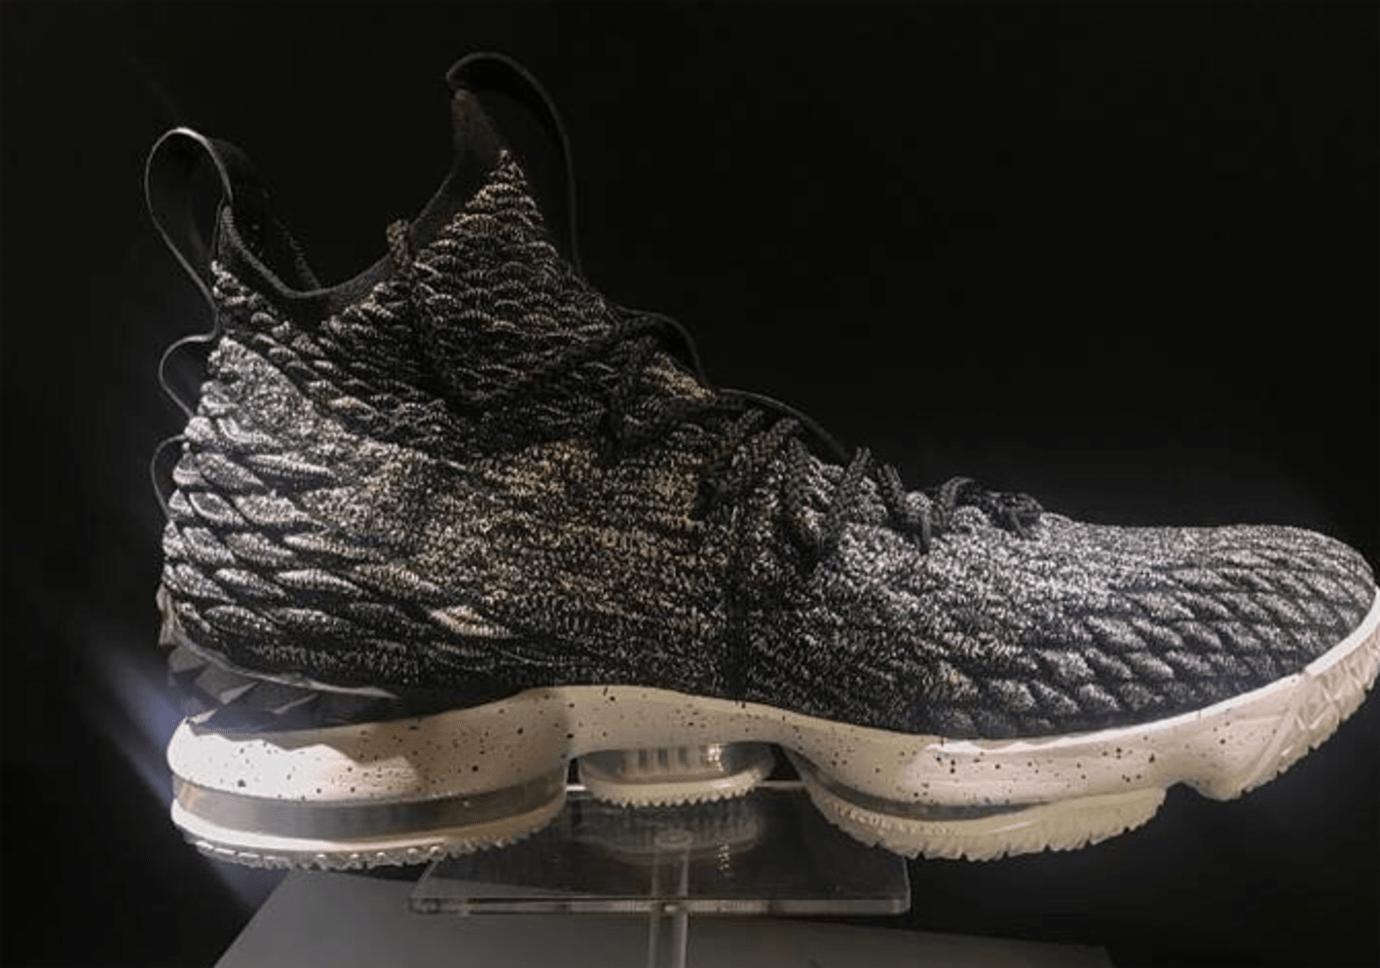 premium selection 07604 56d47 Nike LeBron 15 Black White 897648-002 | Sole Collector